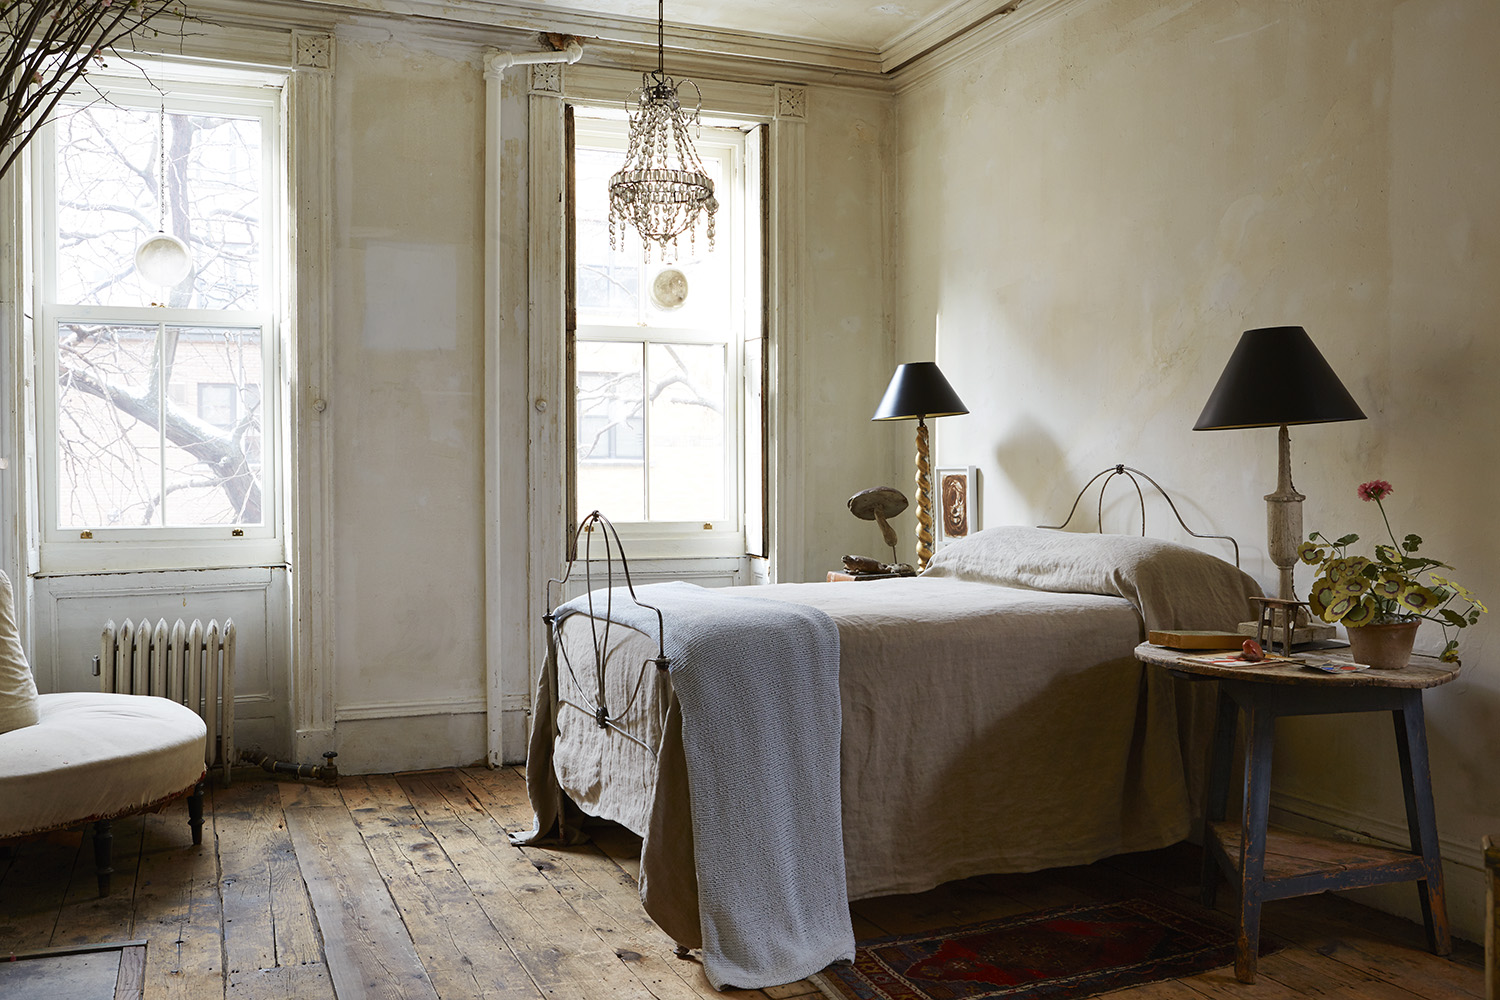 Bedroom_1_MadameFigaro_JohnDerian9213-retirerle tableauaumur.jpg